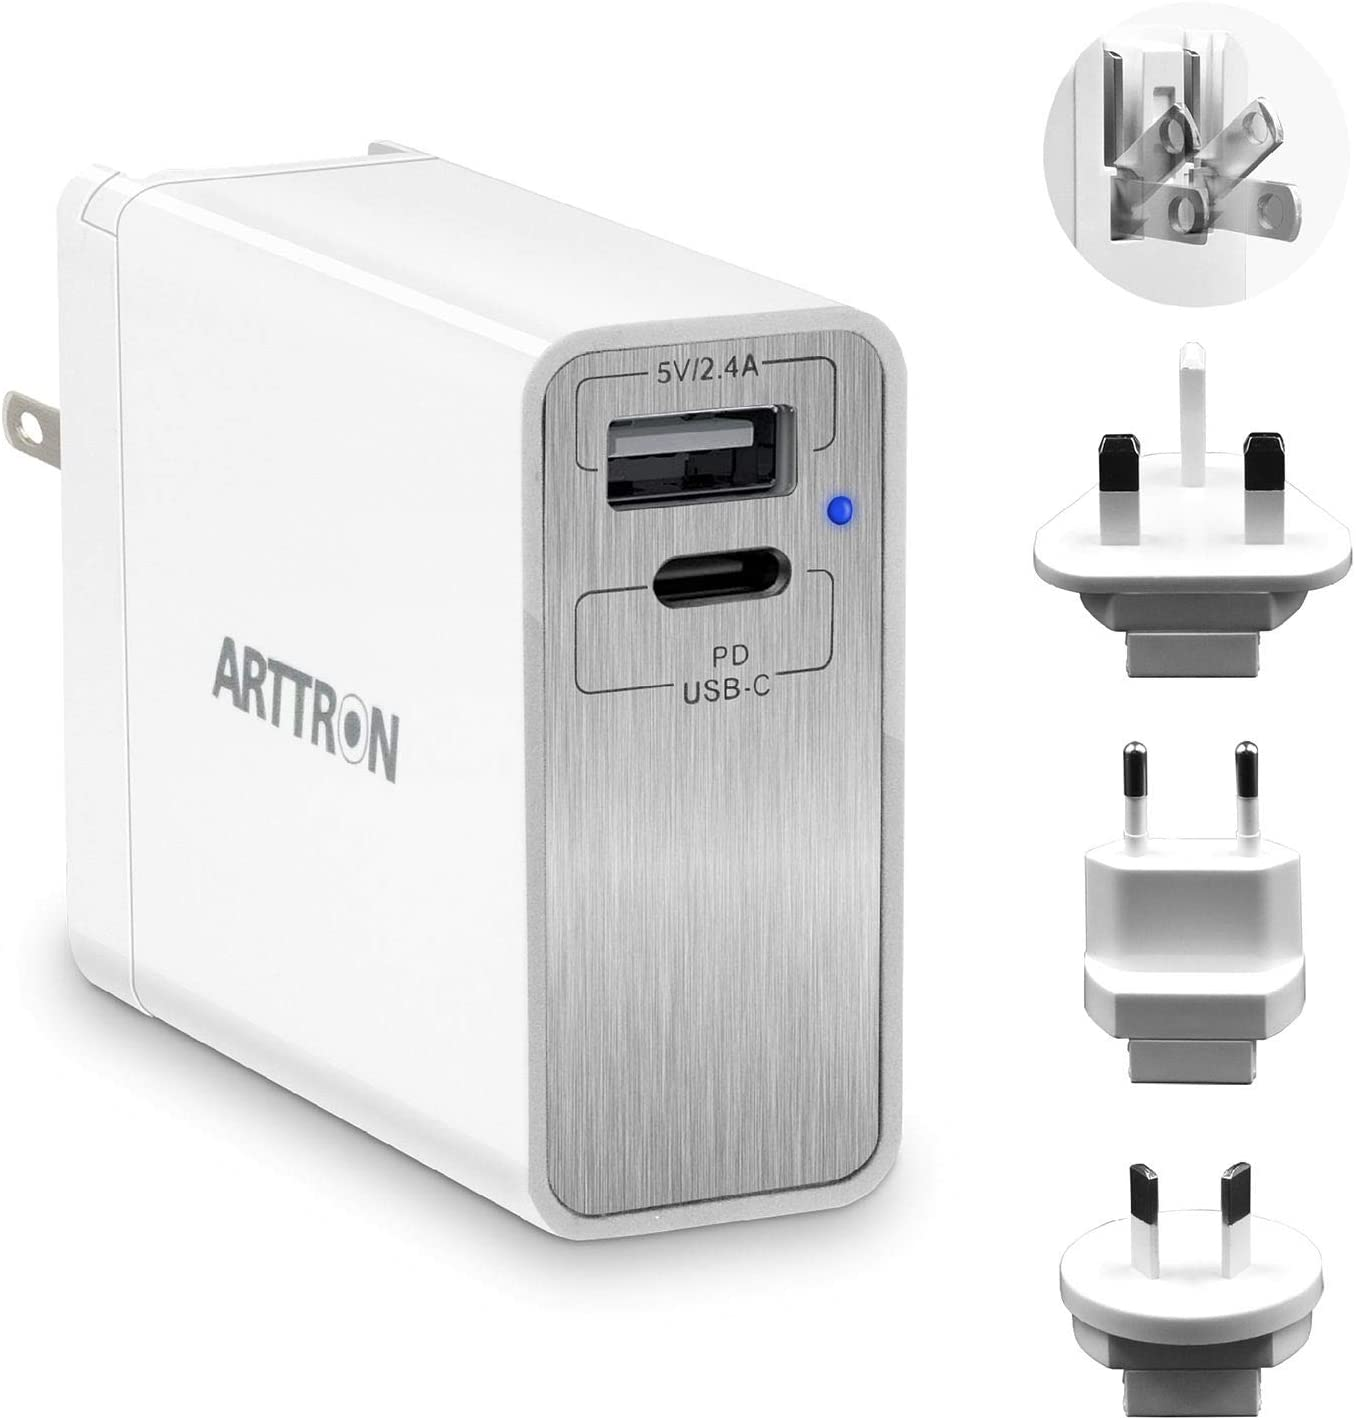 USB C PD Charger, ARTTRON 45W 2-Port USB Wall Charging Station with 45W Power Delivery Port, Compatible iPhone 11/Pro/Max, Ipad Pro 2018, MacBook, Galaxy S9 S8 and More